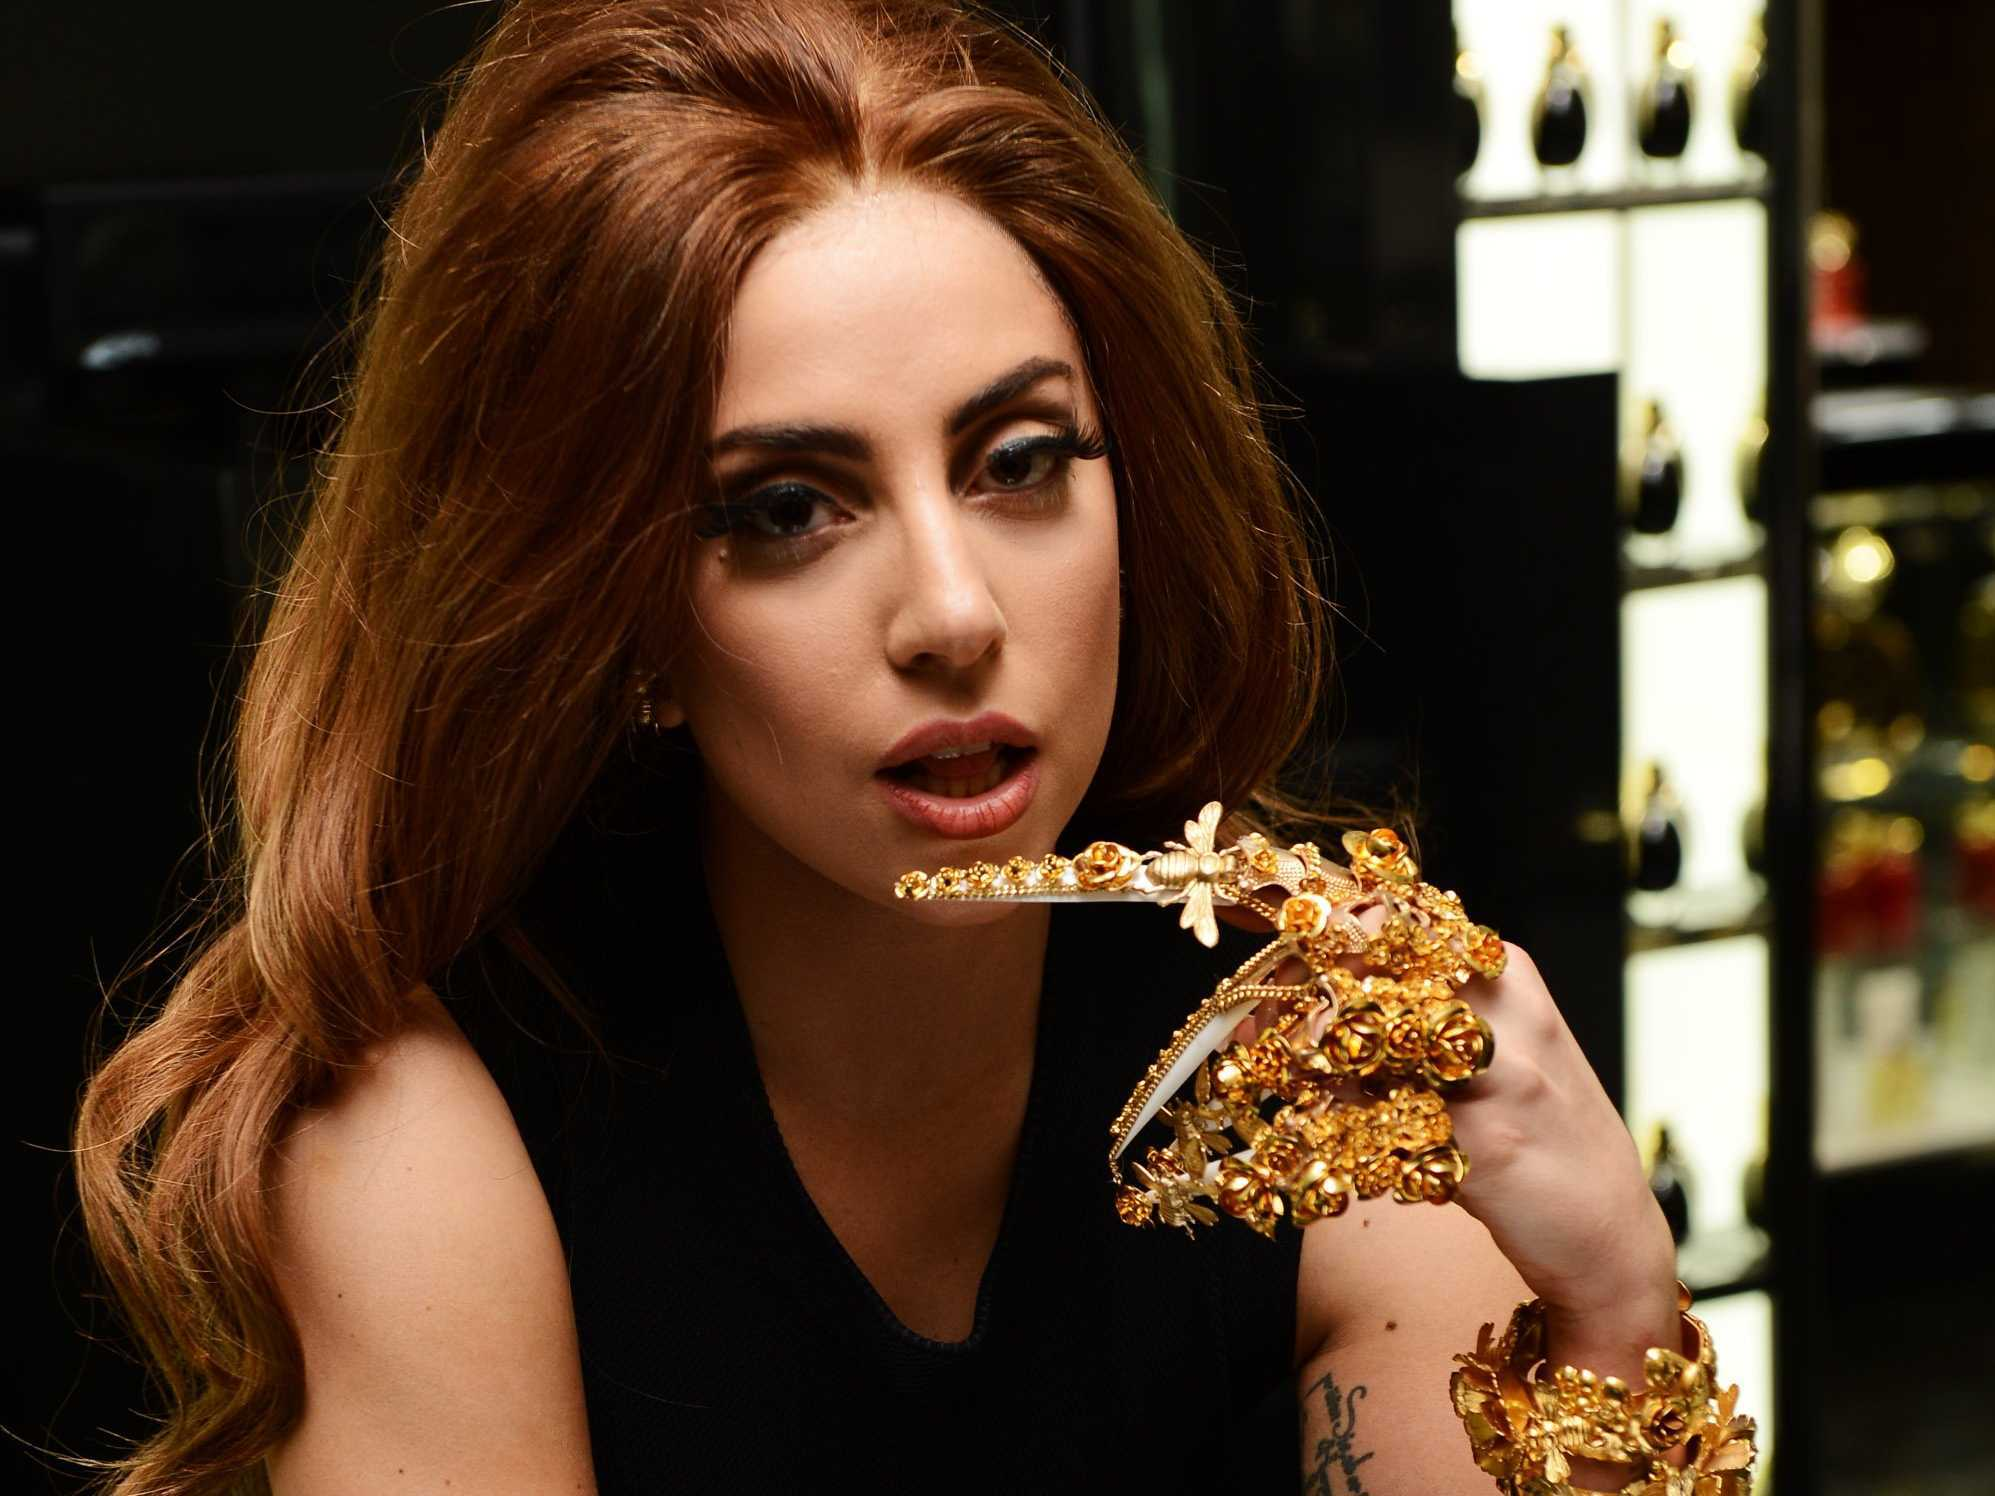 Music_Singer_Lady_Gaga_with_brown_hair_053393_